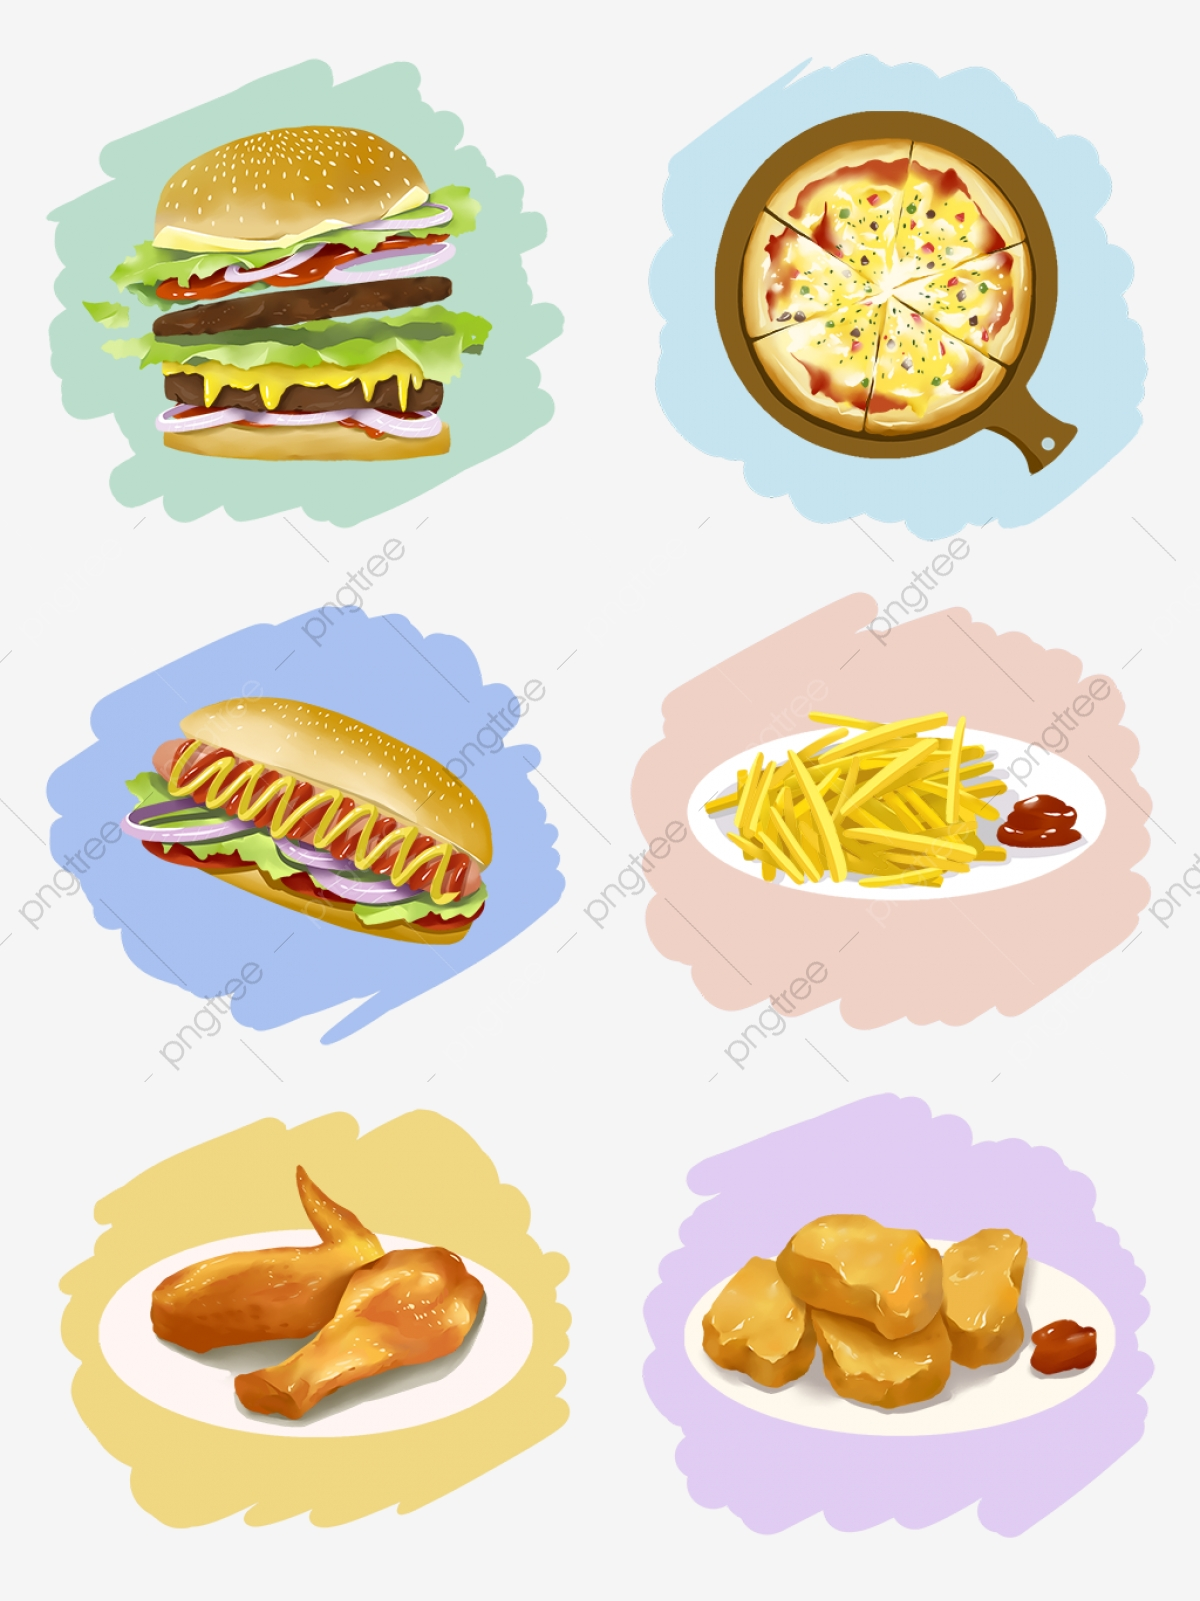 Hand Drawing Cartoon Material Food Fast Foreign Burger Pizza Hot